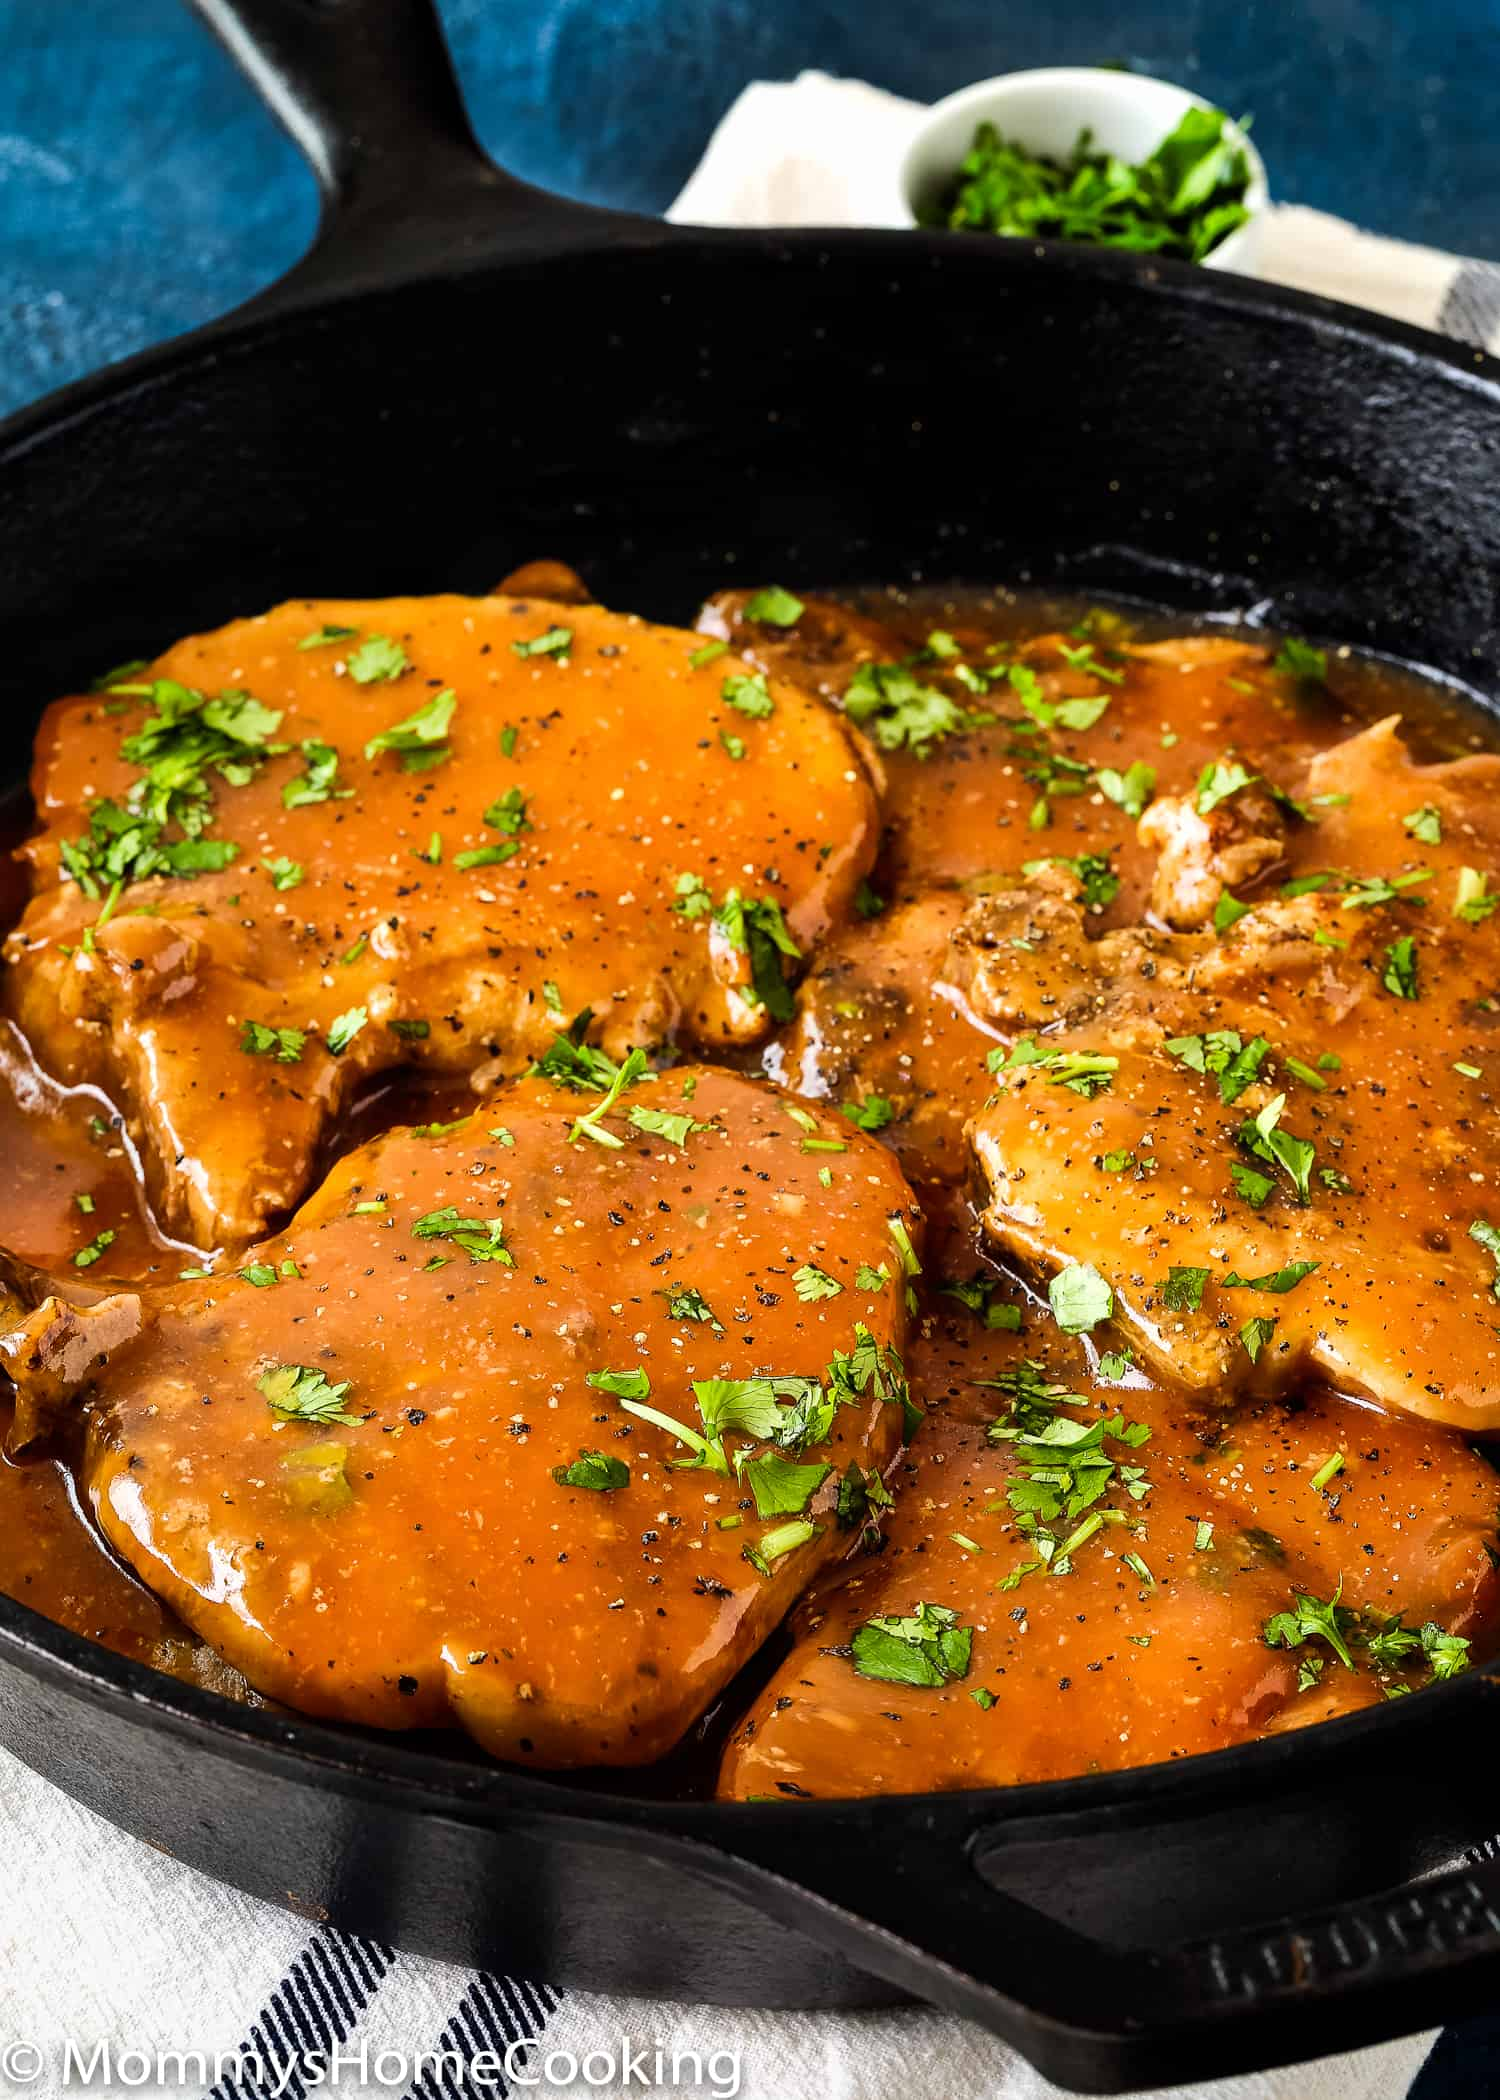 These Slow Cooker Beer Pork Chops are spectacularly delicious! This recipe results in tender, flavor-packed pork chops that taste like a million bucks.You can make this tonightwith any pork chops or even CHICKEN! https://mommyshomecooking.com